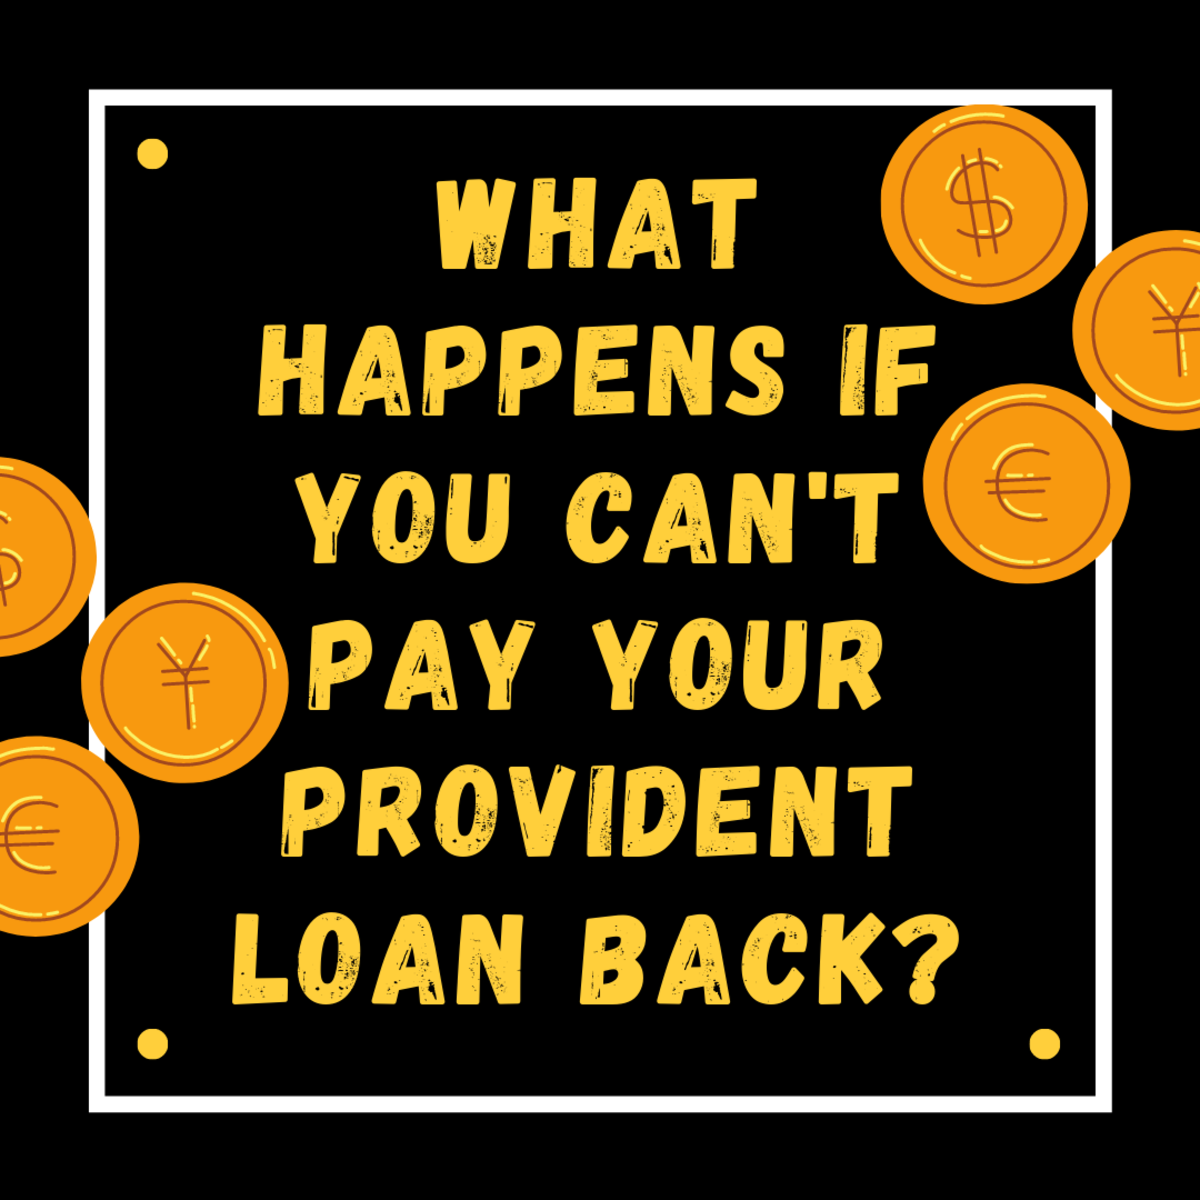 Paying your provident loan back can be tricky. Read on to learn more.